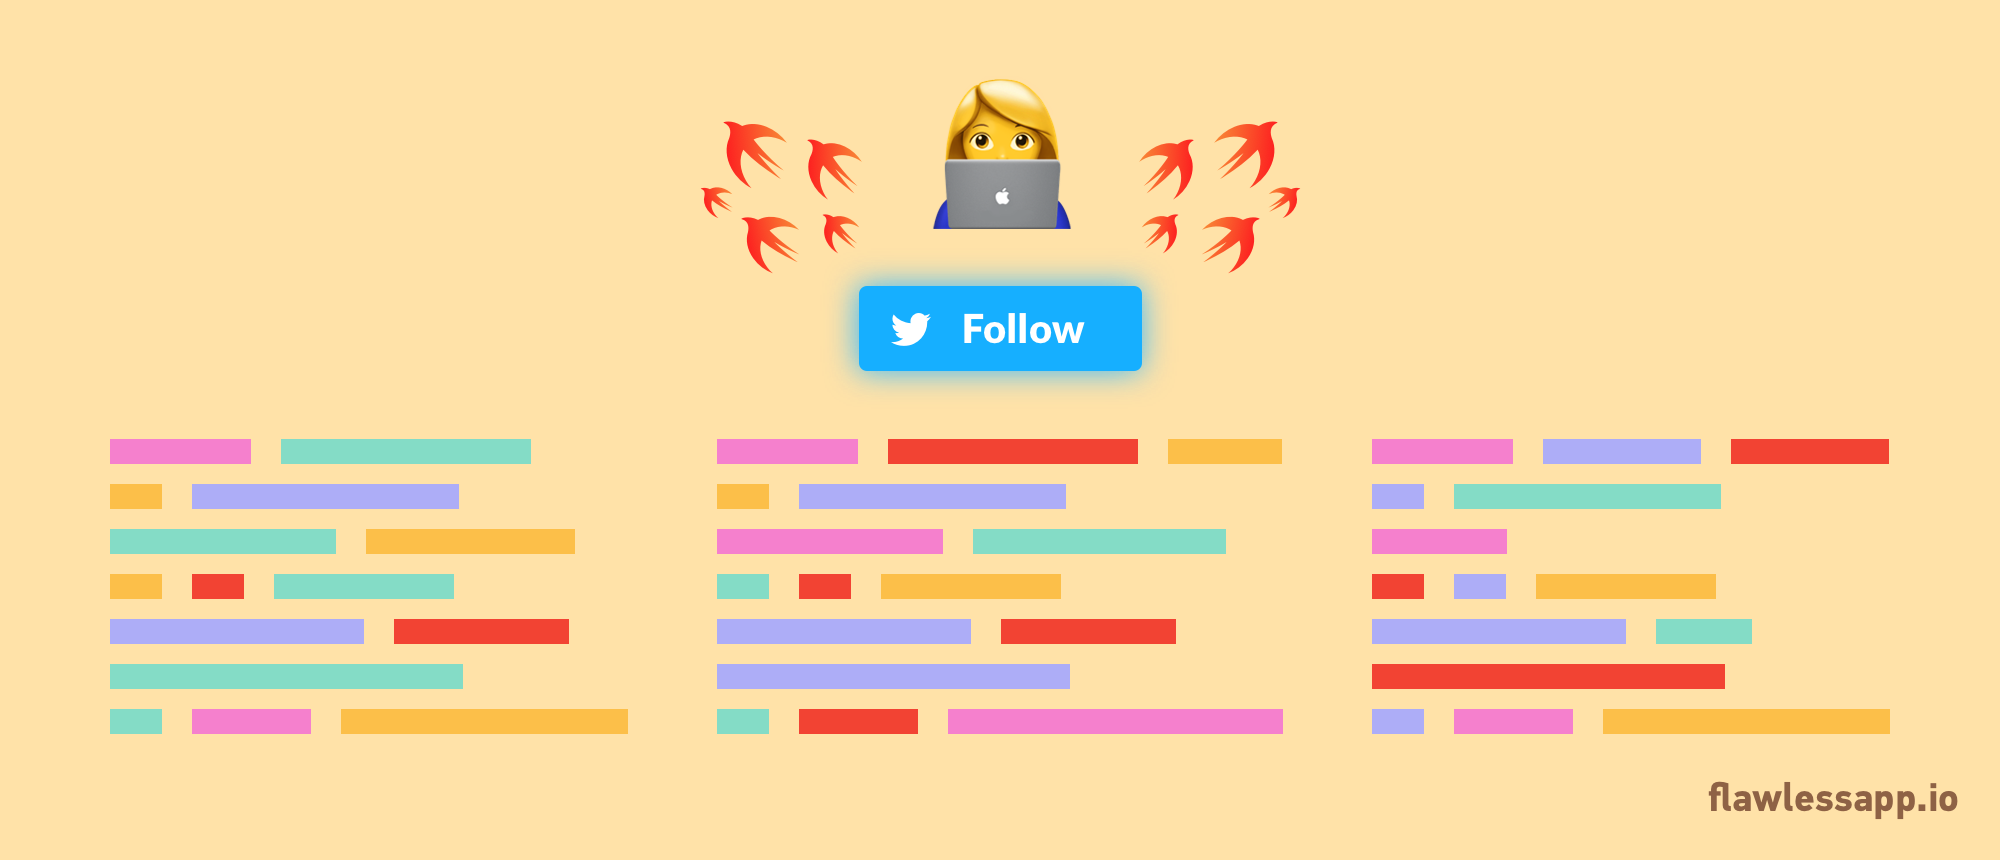 Awesome Ladies iOS Engineers to Follow on Twitter - Flawless